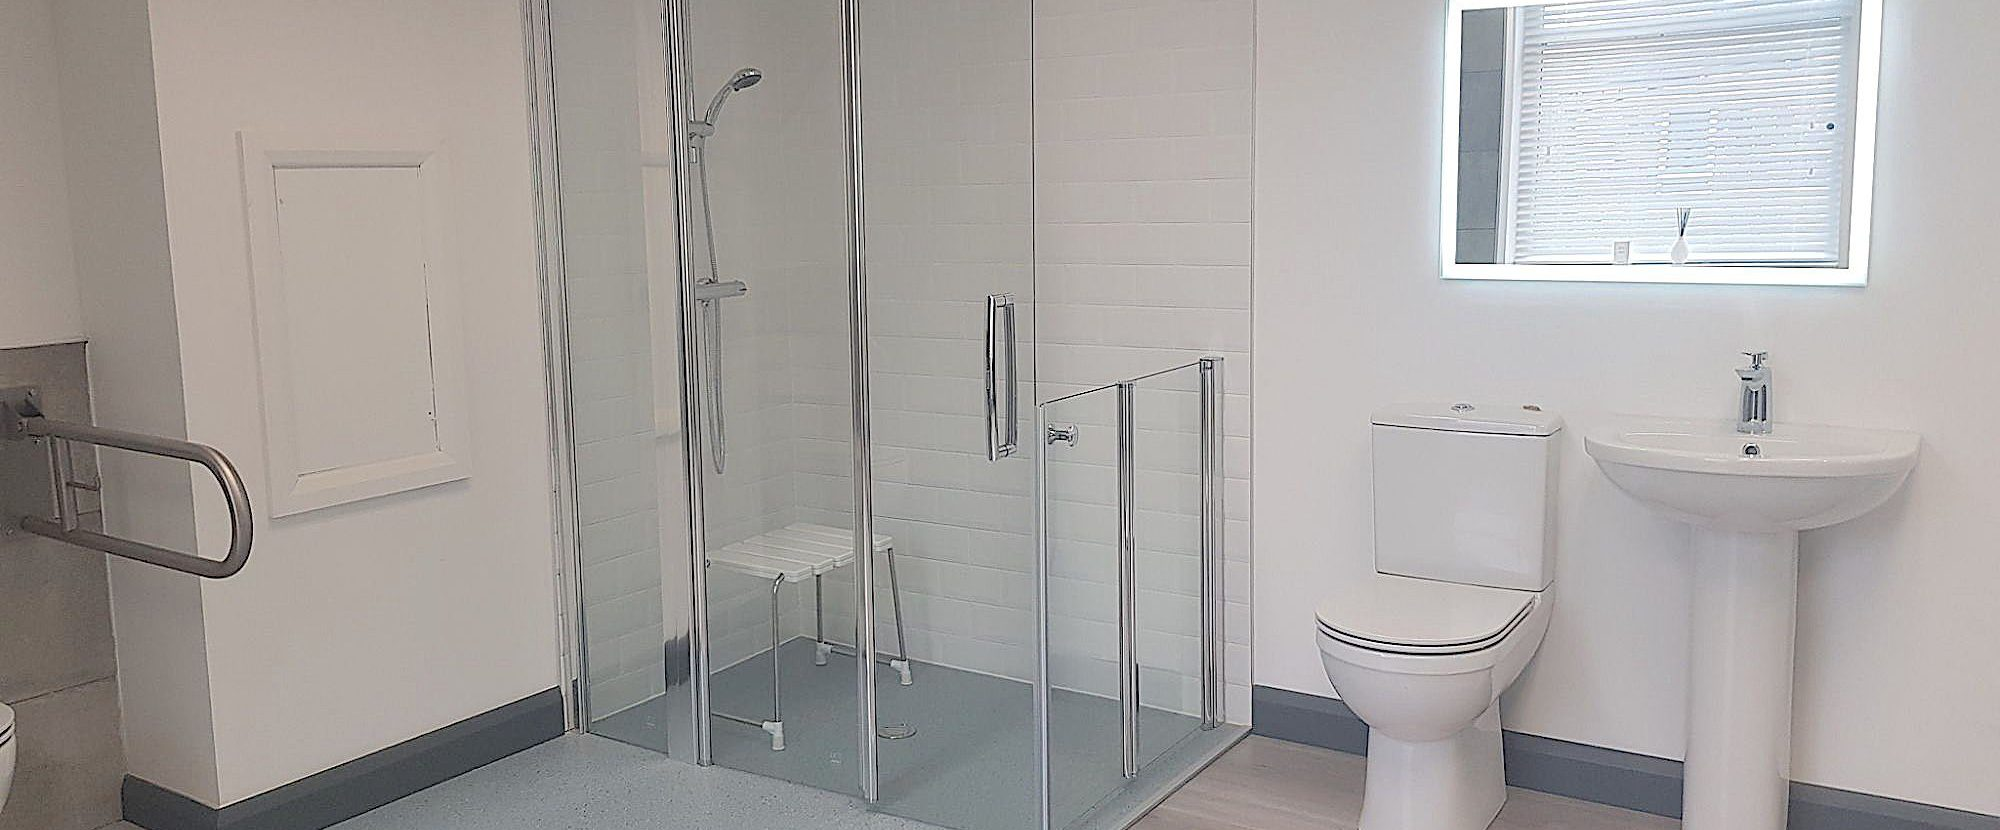 accessible bathroom for disabled access